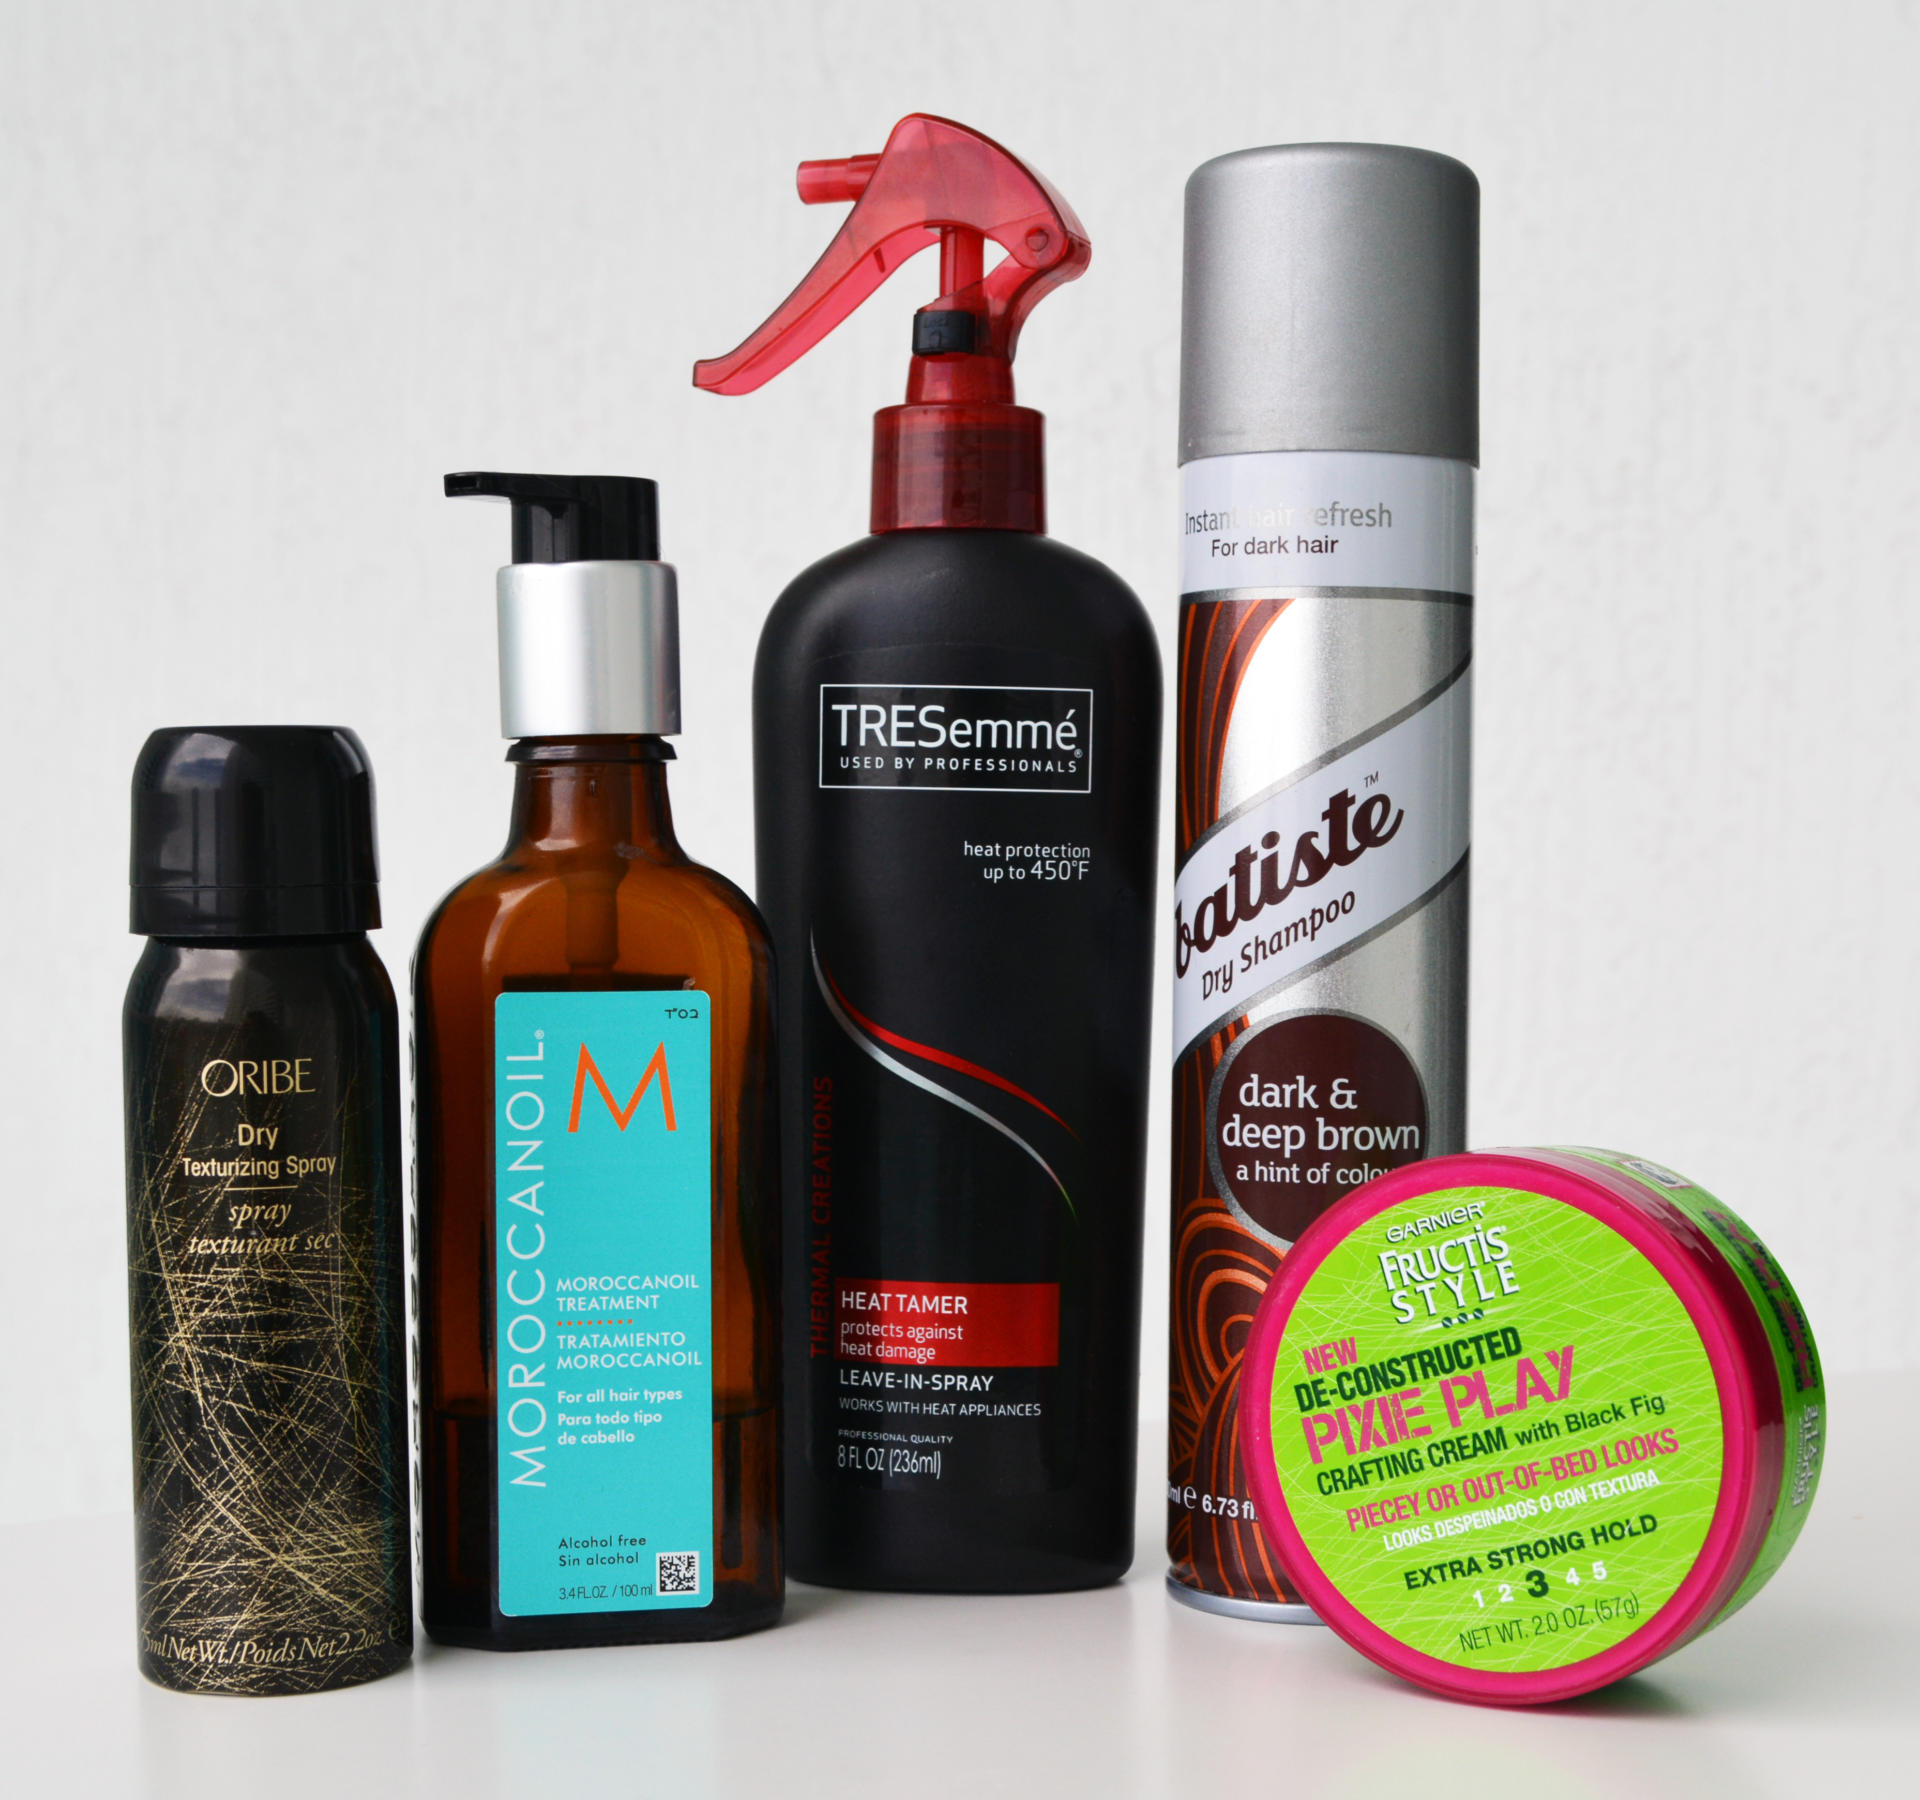 Hair Products I Love (Drugstore & High End)